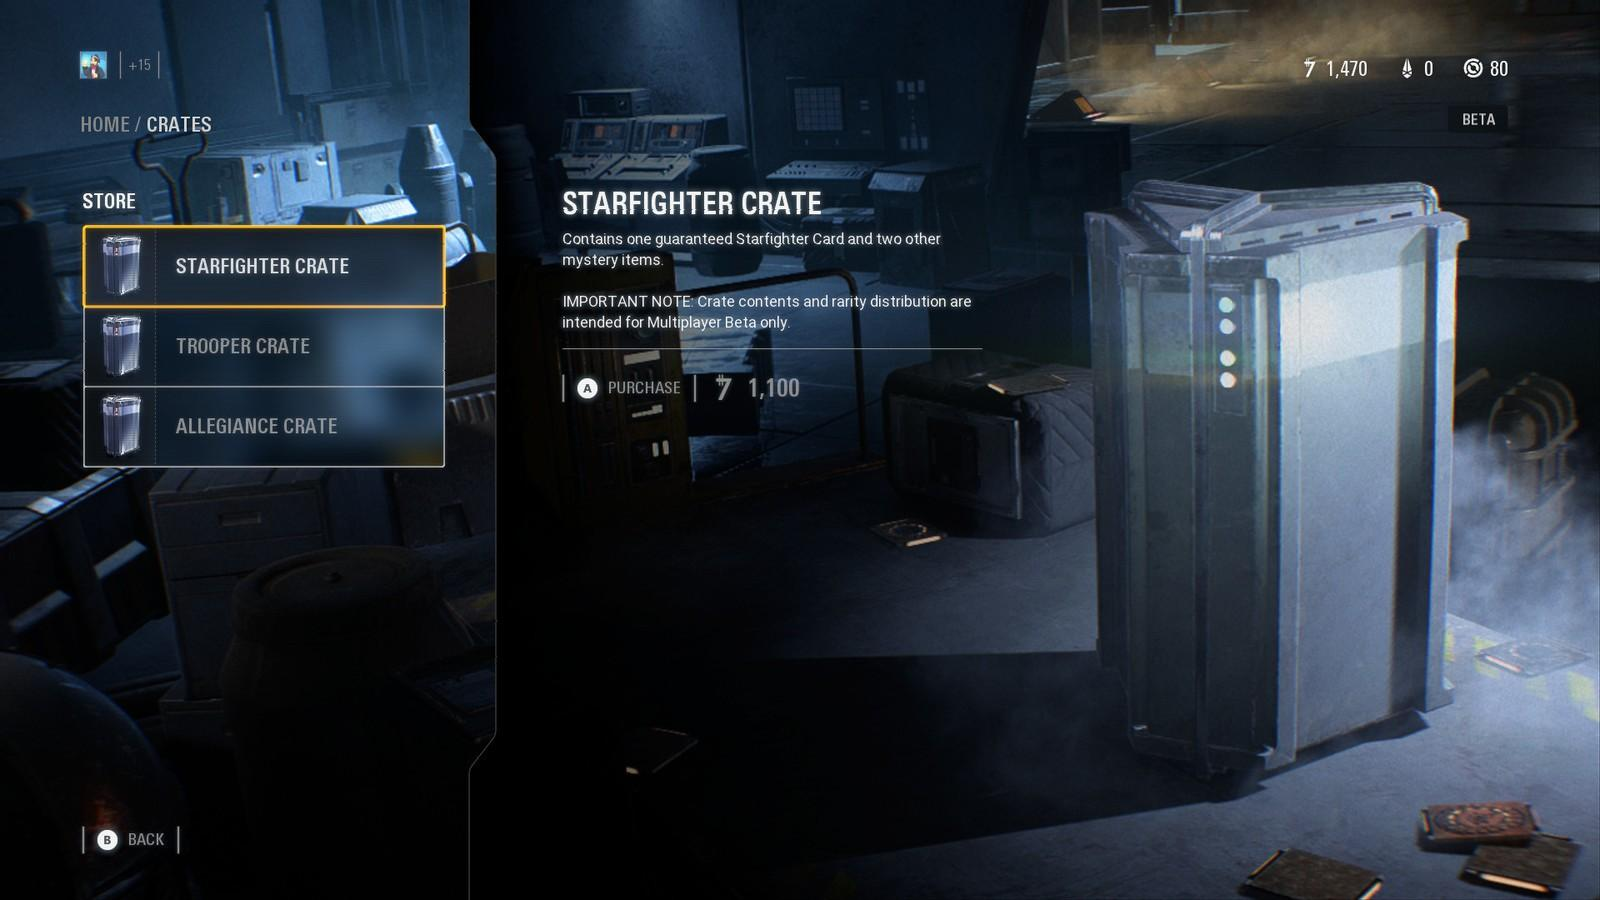 Star Wars: Battlefront II received backlash from fans over monetisation within the game